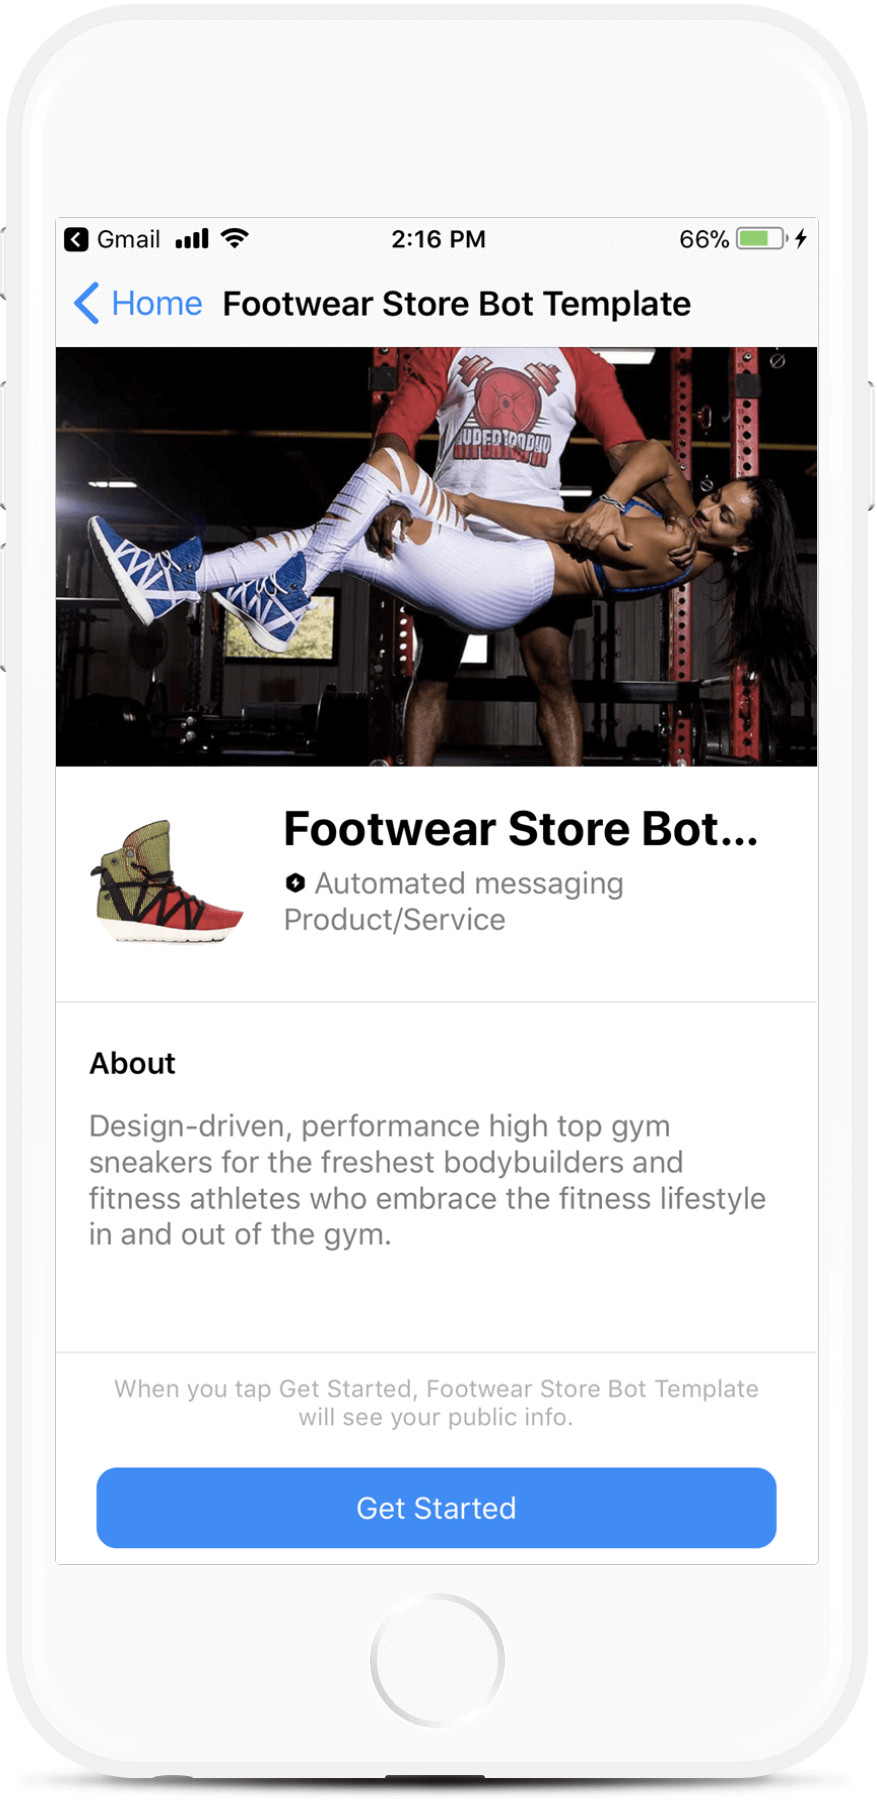 Footwear Store Bot Template bot screenshot